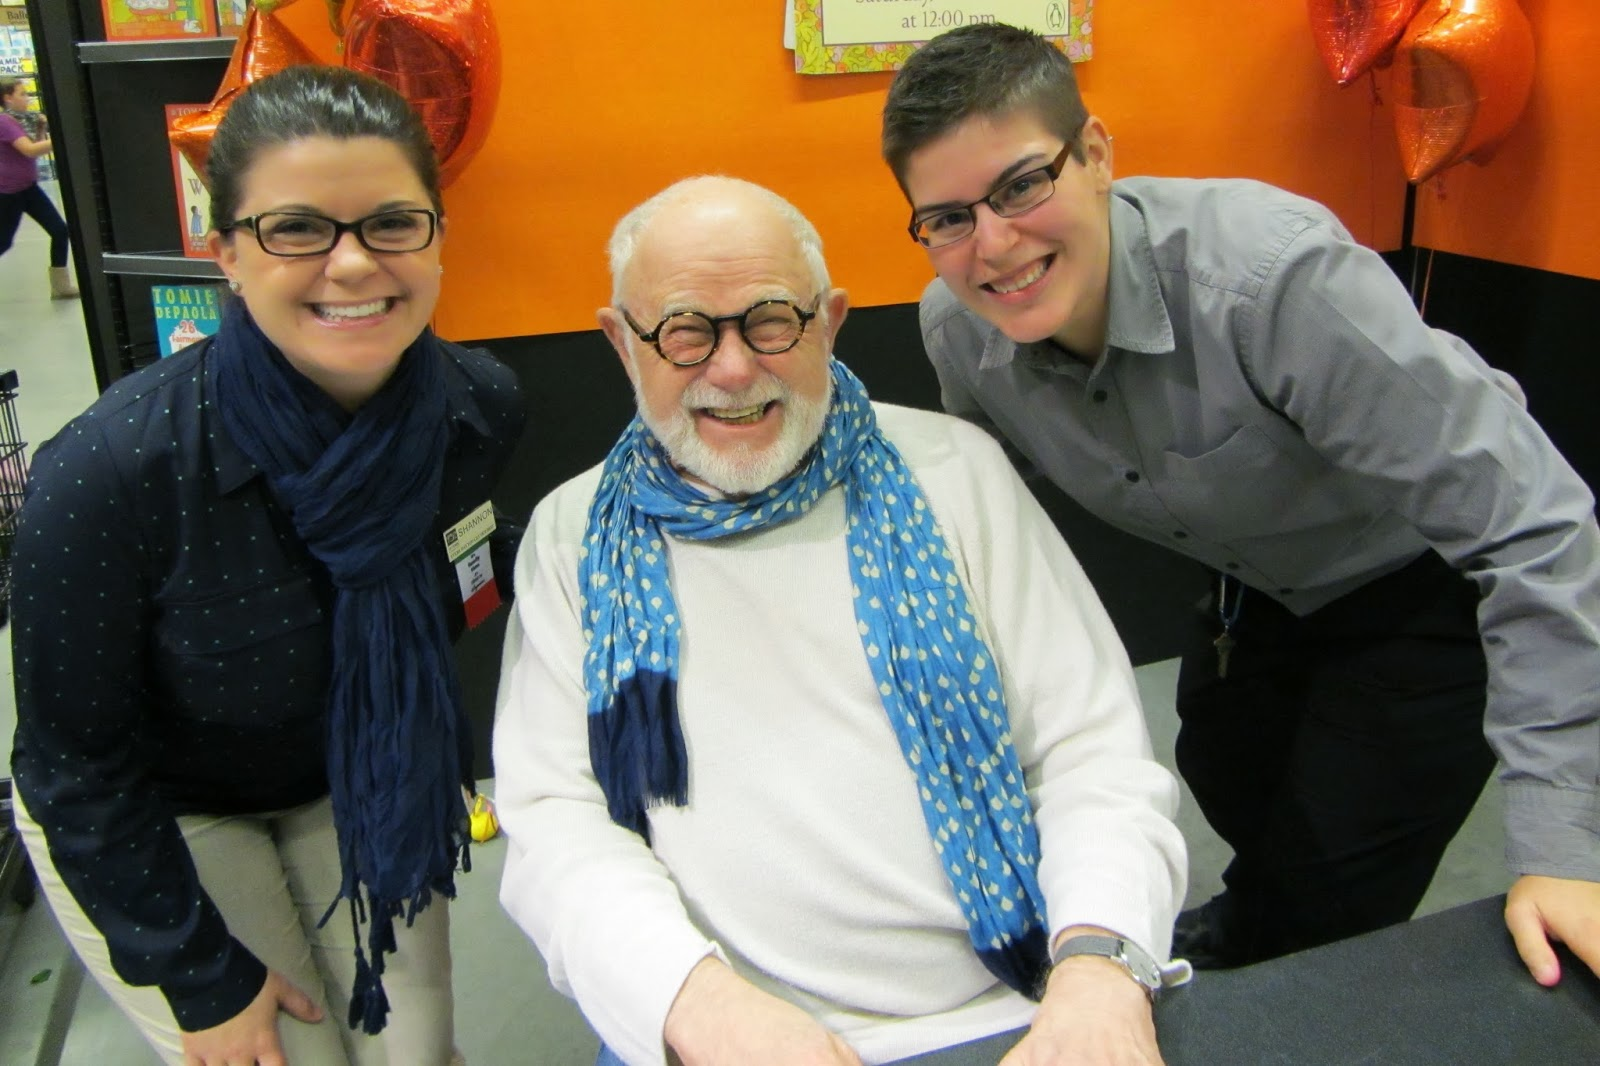 the official tomie depaola blog what do milk diapers liquid plumbr and tomie depaola have in common they could all be found yesterday at wegmans - Wegmans Asset Protection